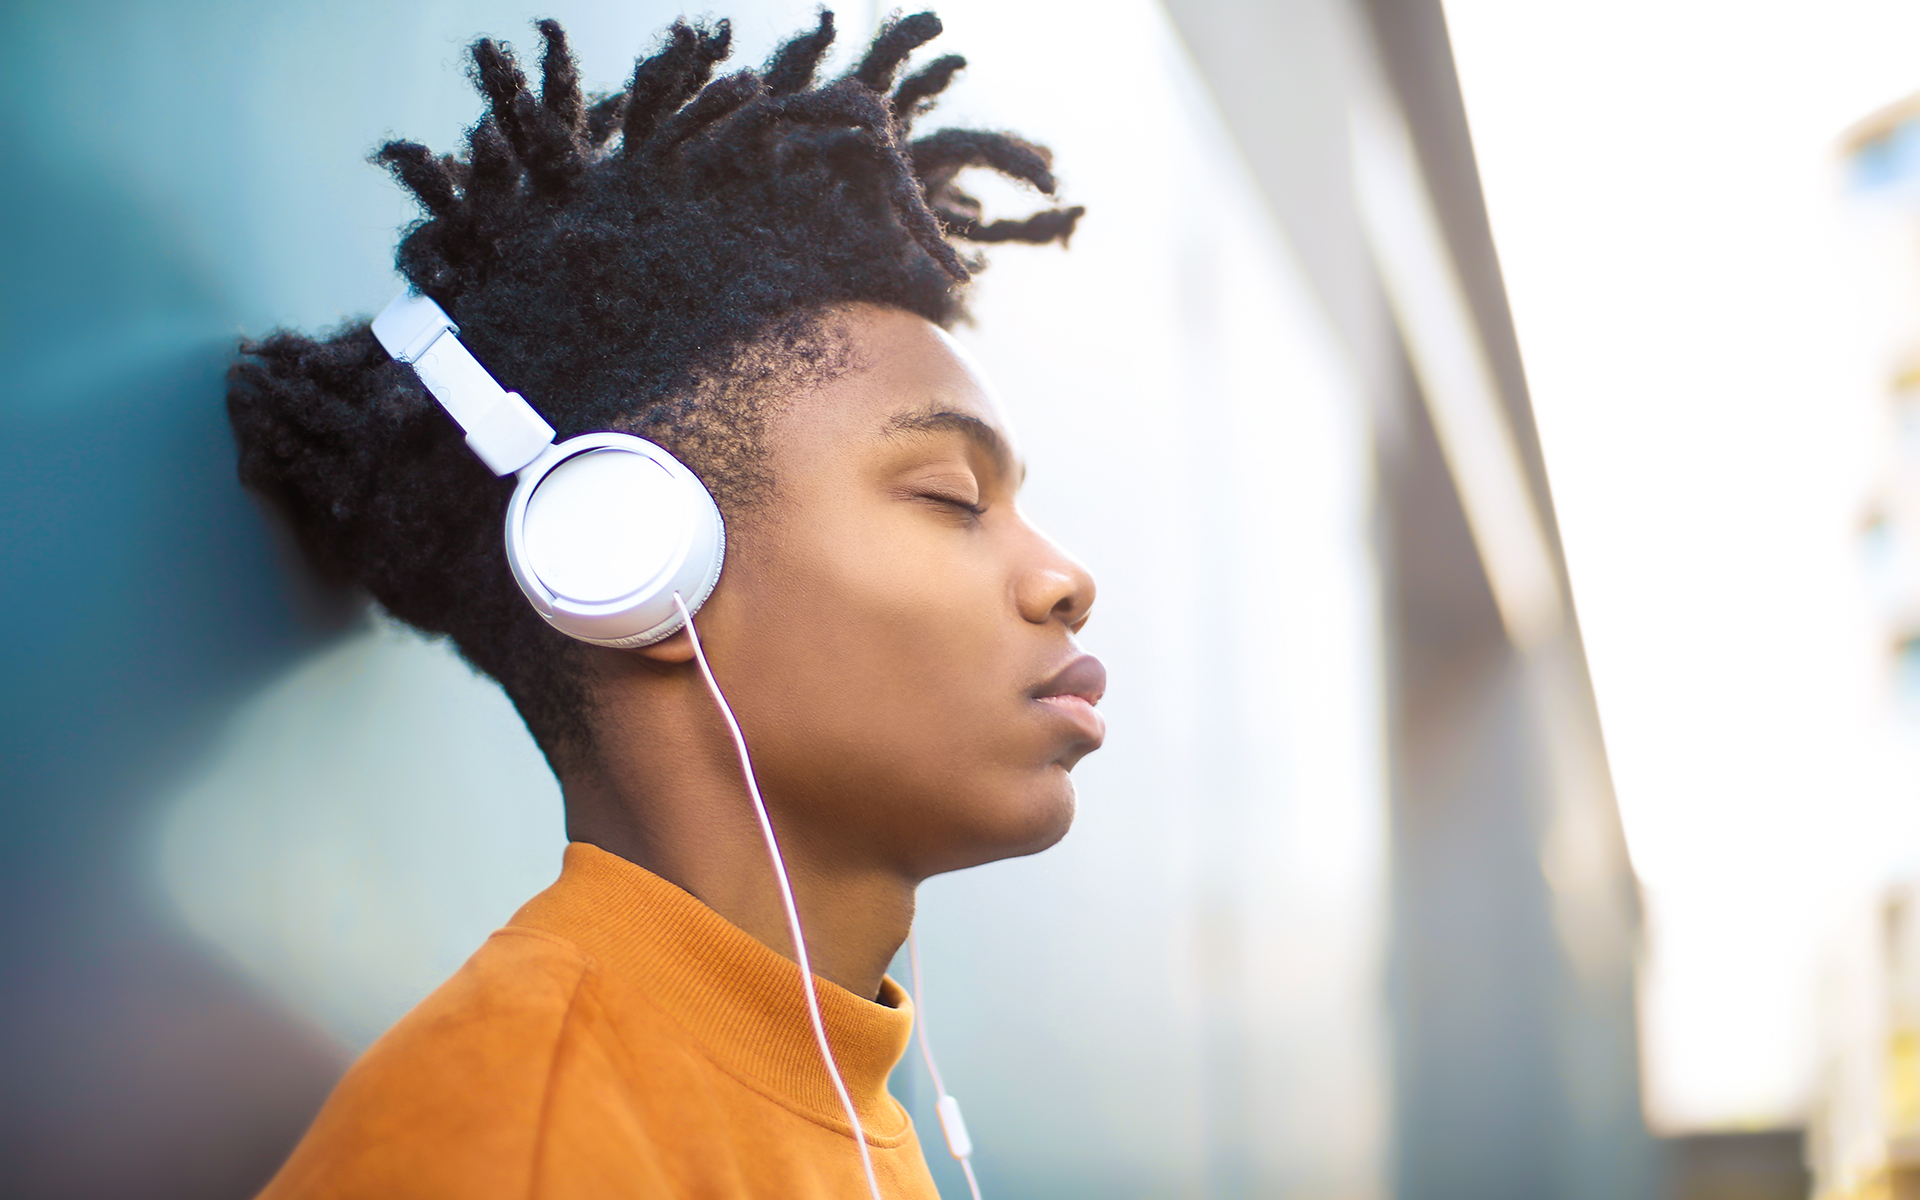 A Guided Meditation for Patience and Resolve - Young Black man listening to a guided meditation with white headphones